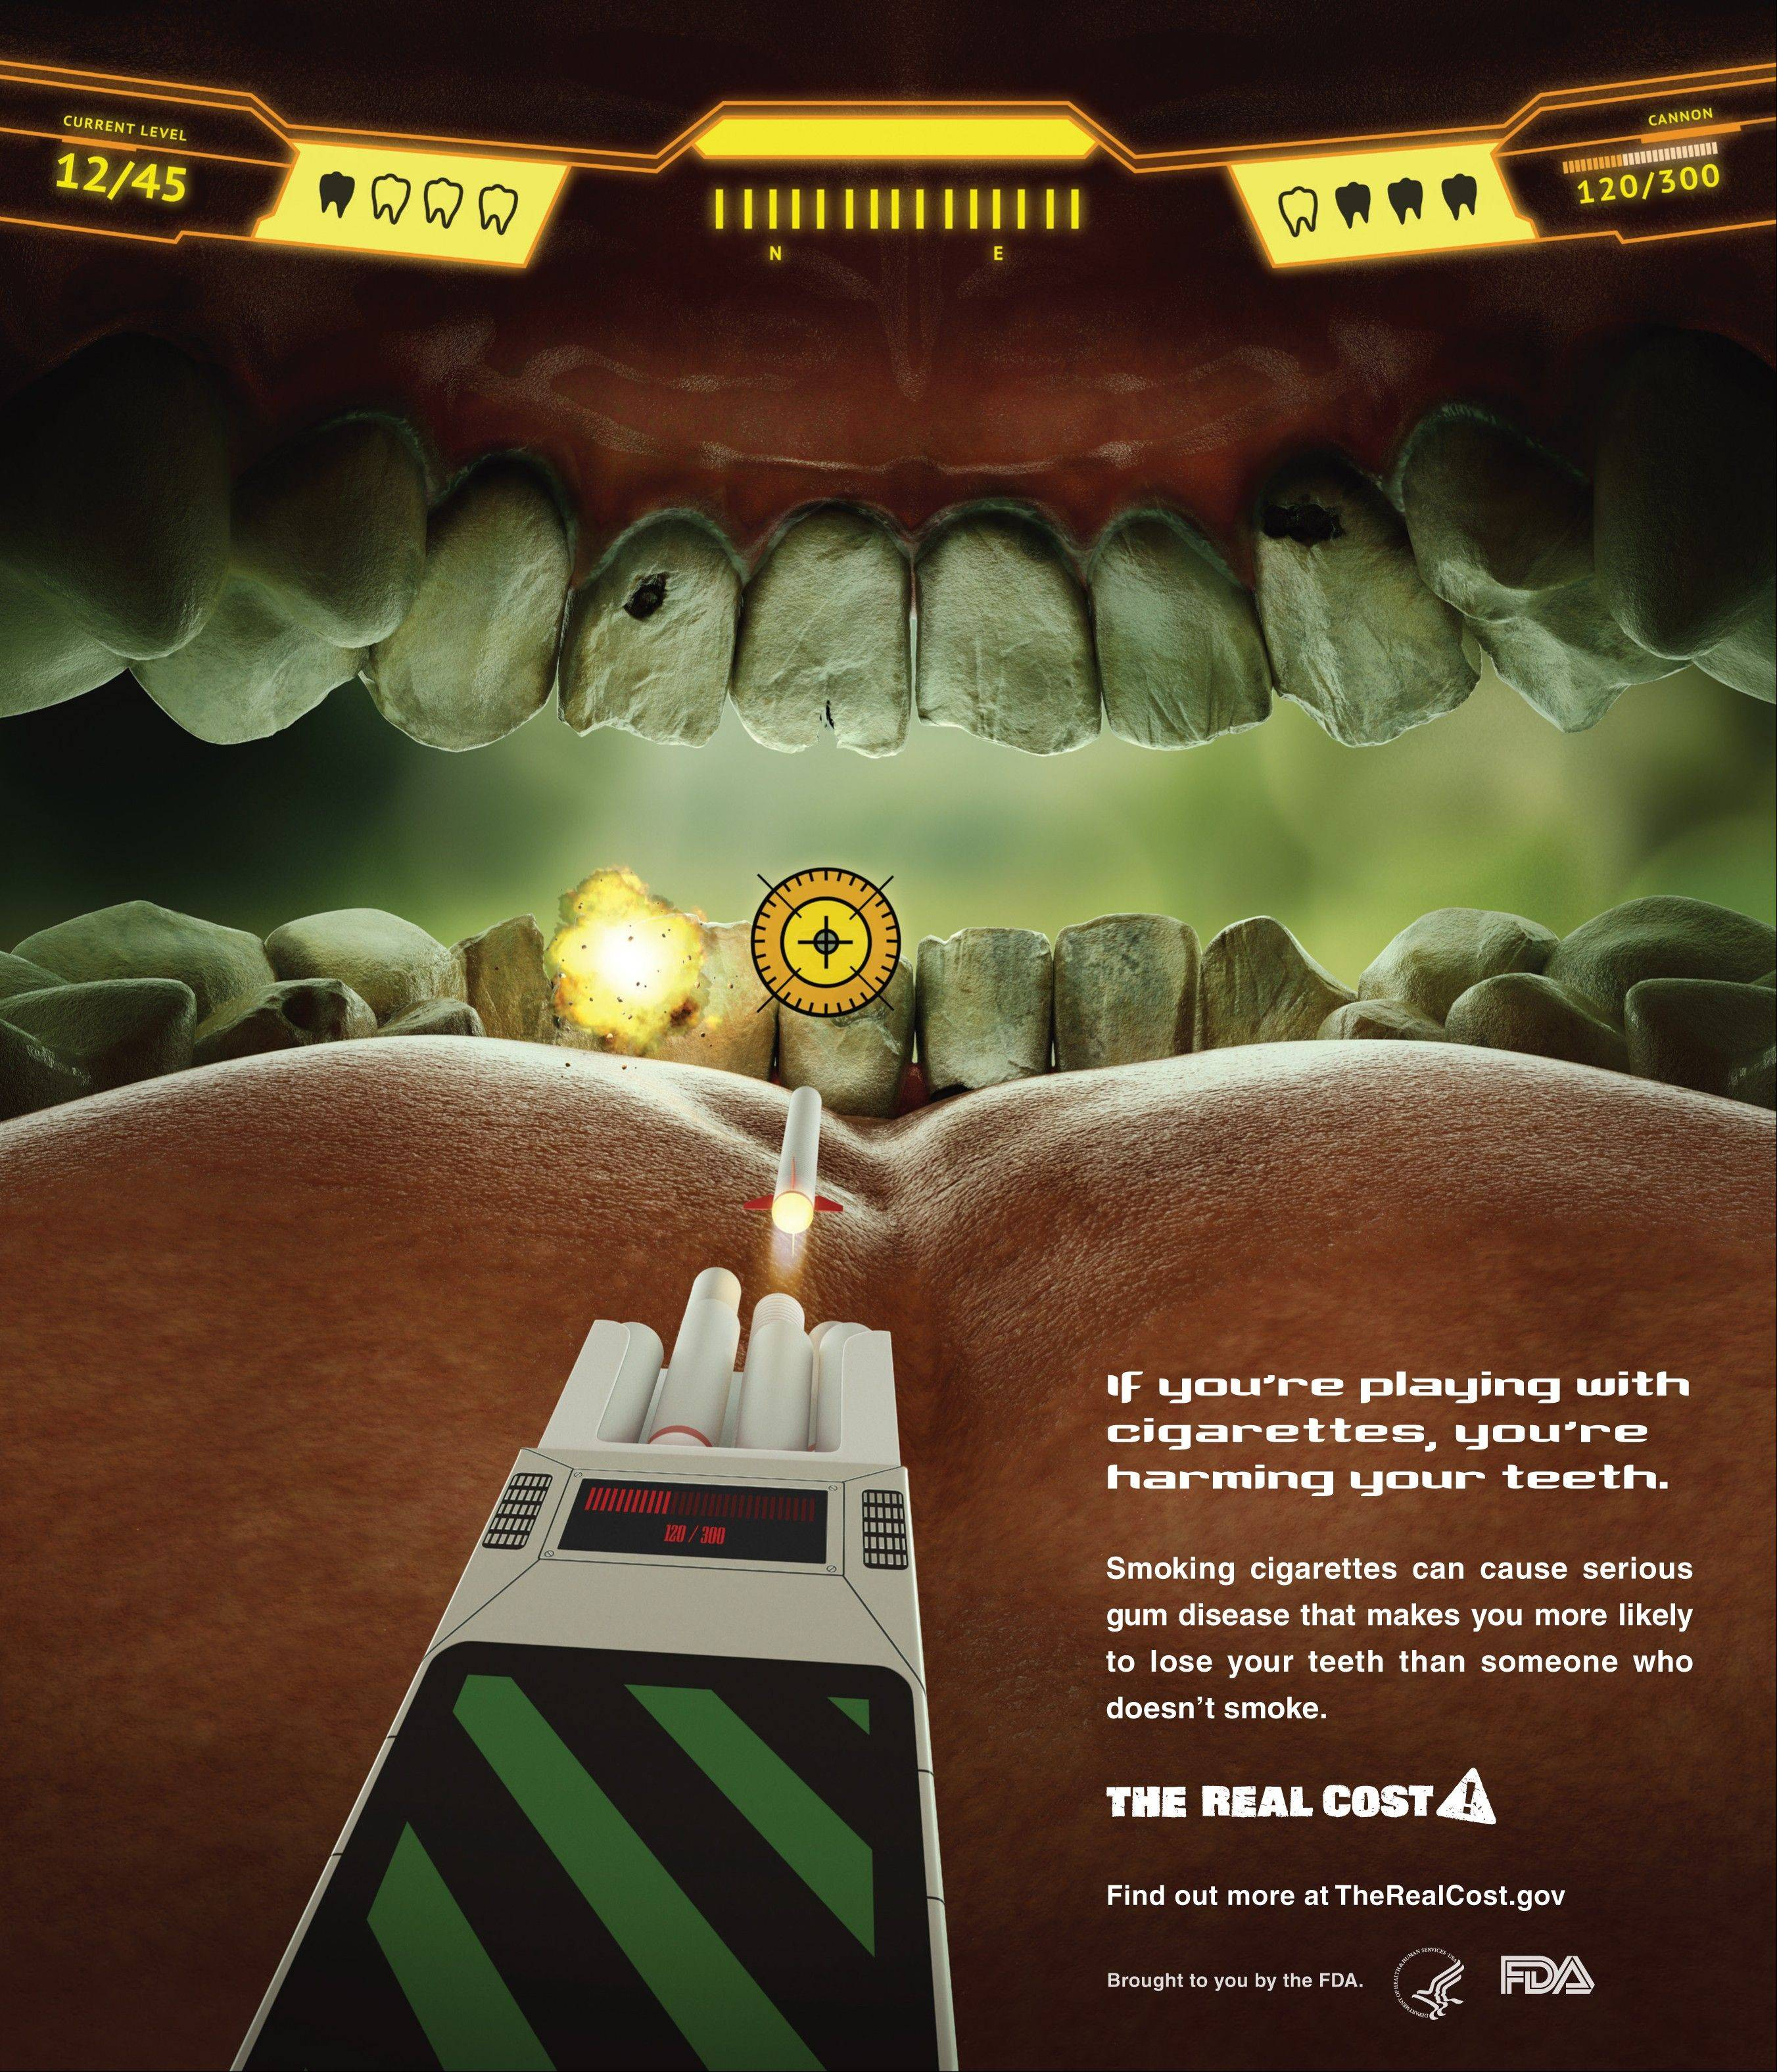 The Food and Drug Administration�s new ad campaign features yellow teeth to show the costs associated with cigarette smoking.